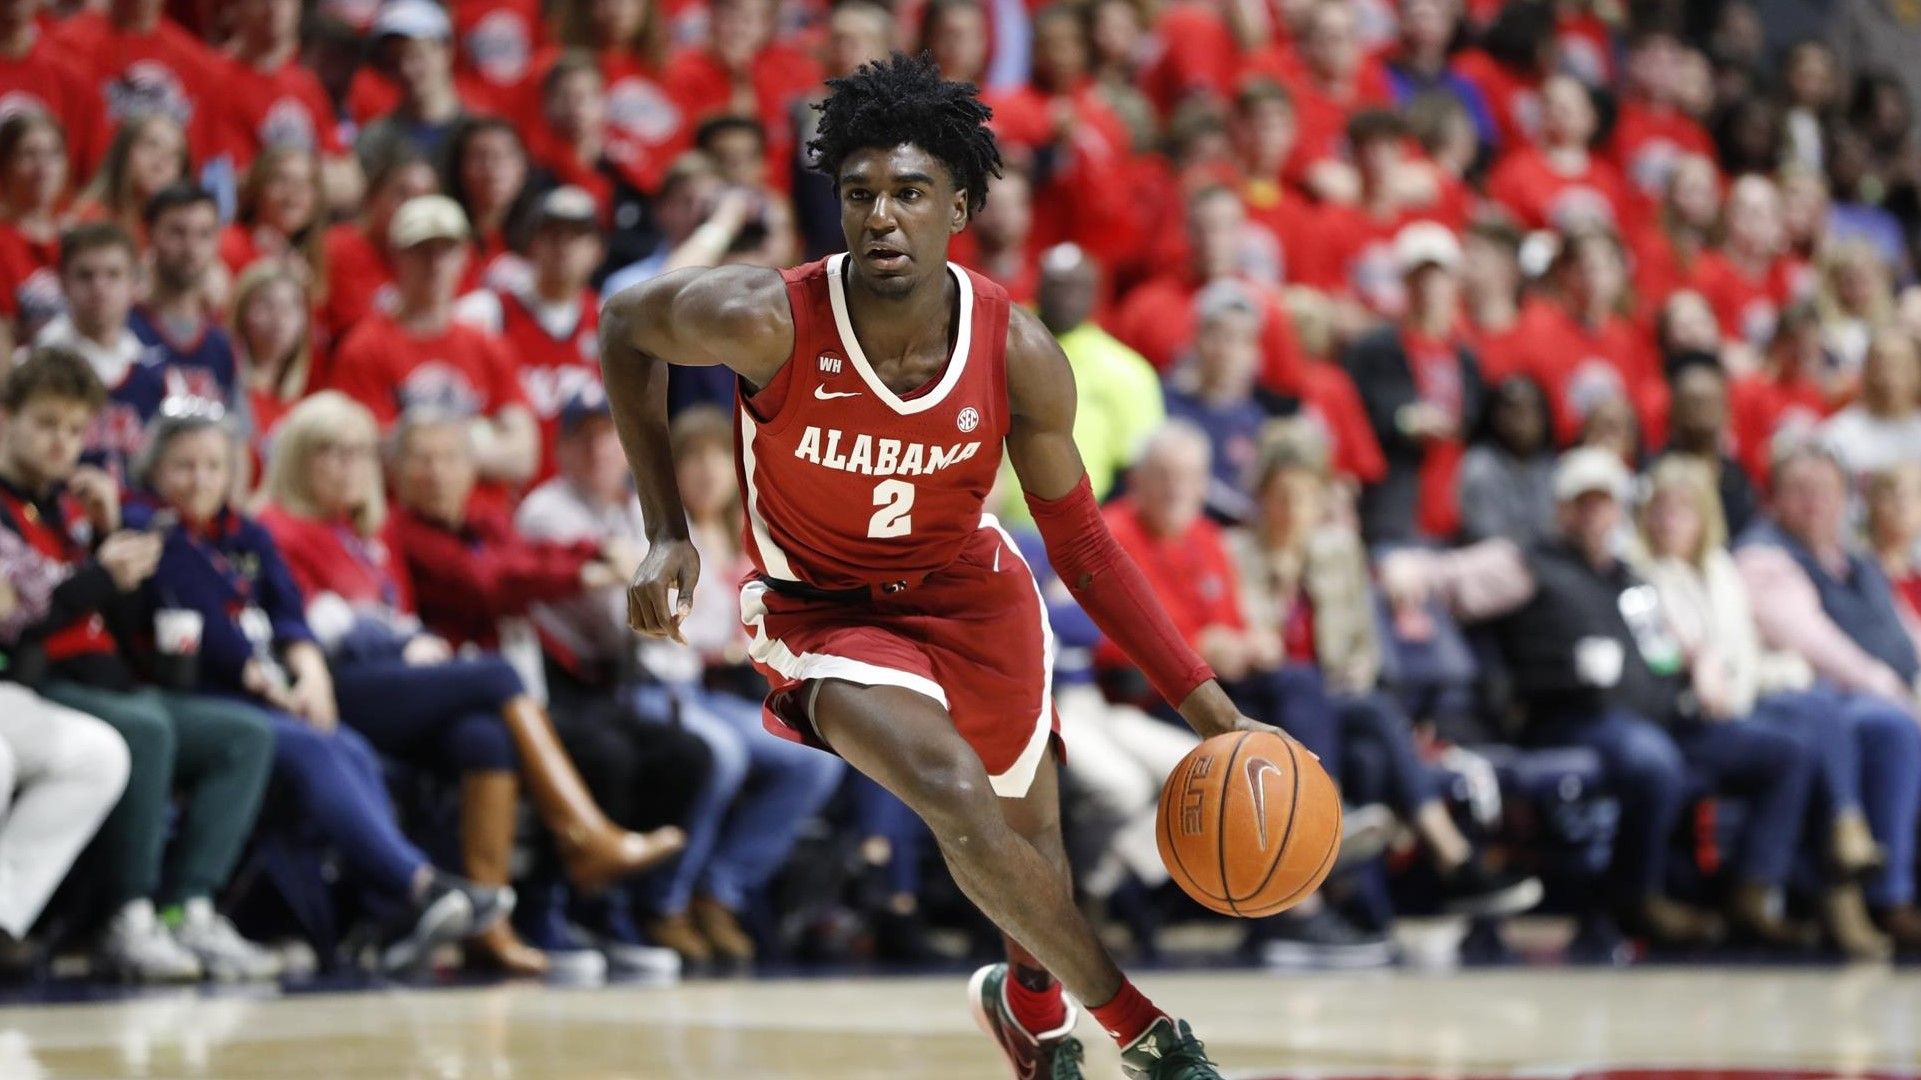 Kira Lewis Jr. - Men's Basketball - University of Alabama Athletics